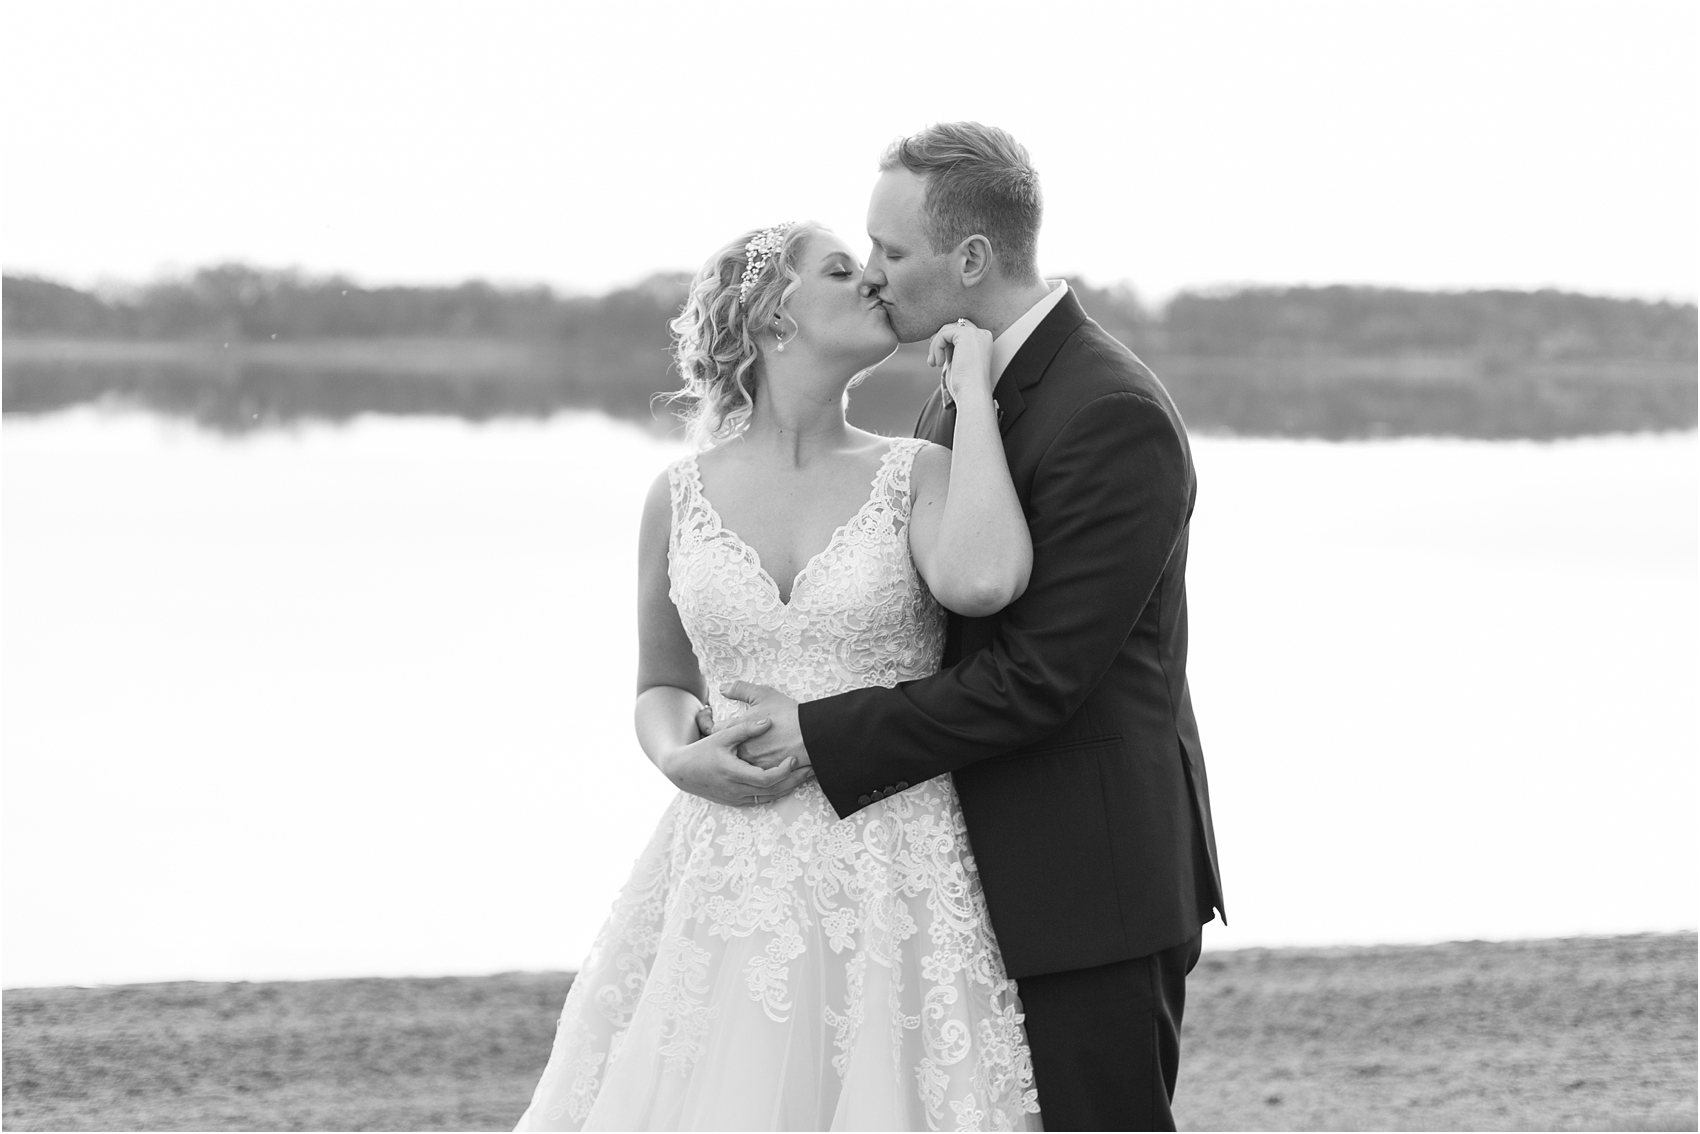 emotional-candid-romantic-wedding-photos-in-detroit-chicago-northern-michigan-by-courtney-carolyn-photography_0027.jpg